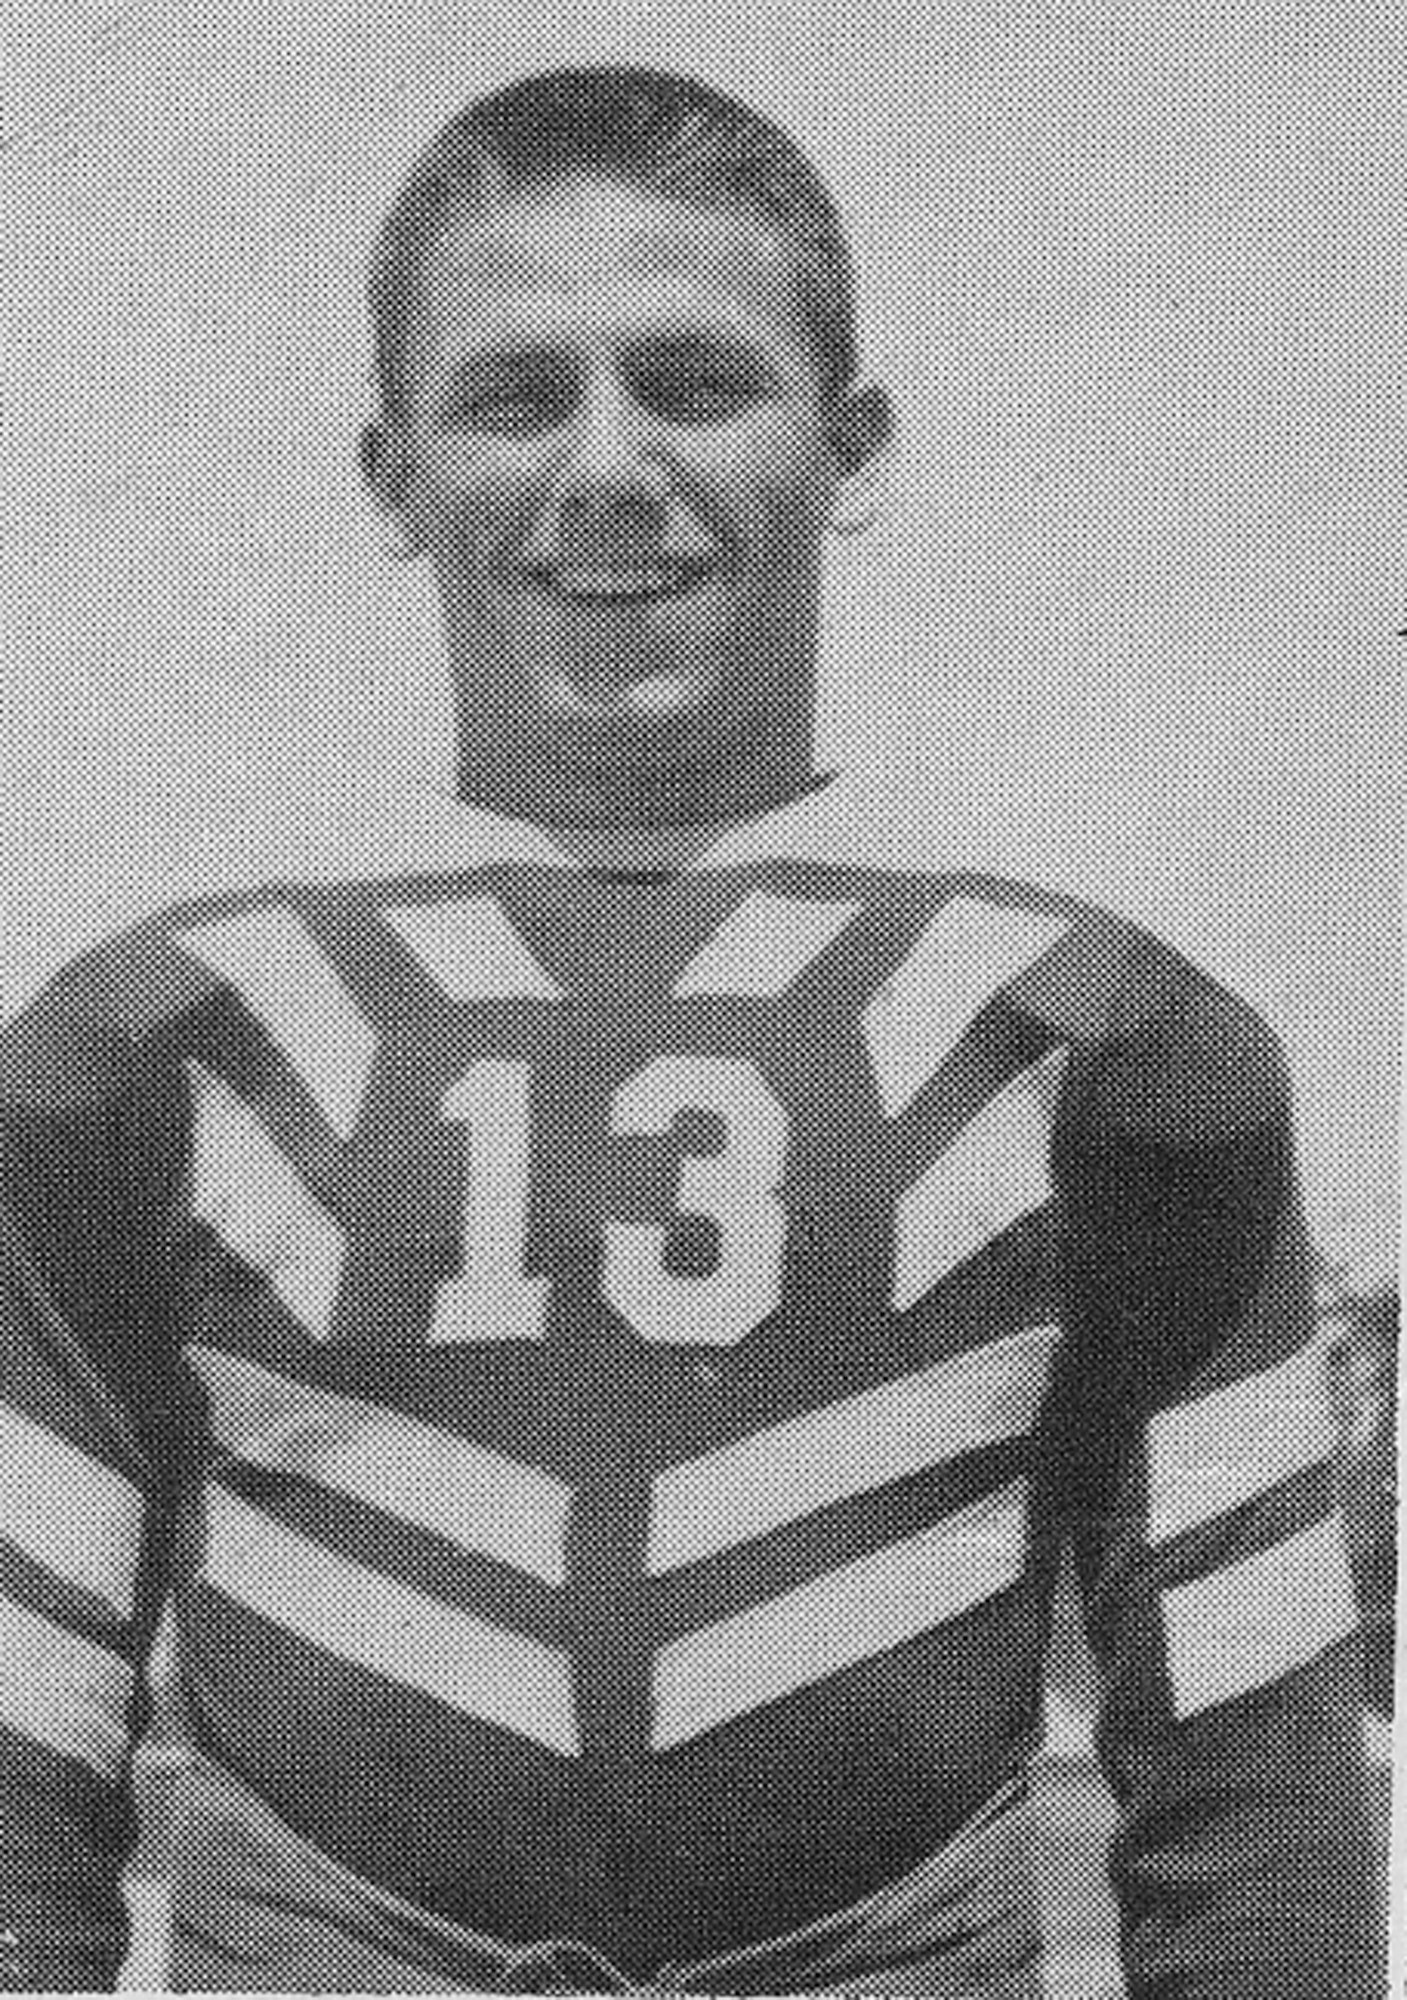 Wilson, who was captain of the football team at Sumter High during his senior year, is seen in his 1937 yearbook photo.